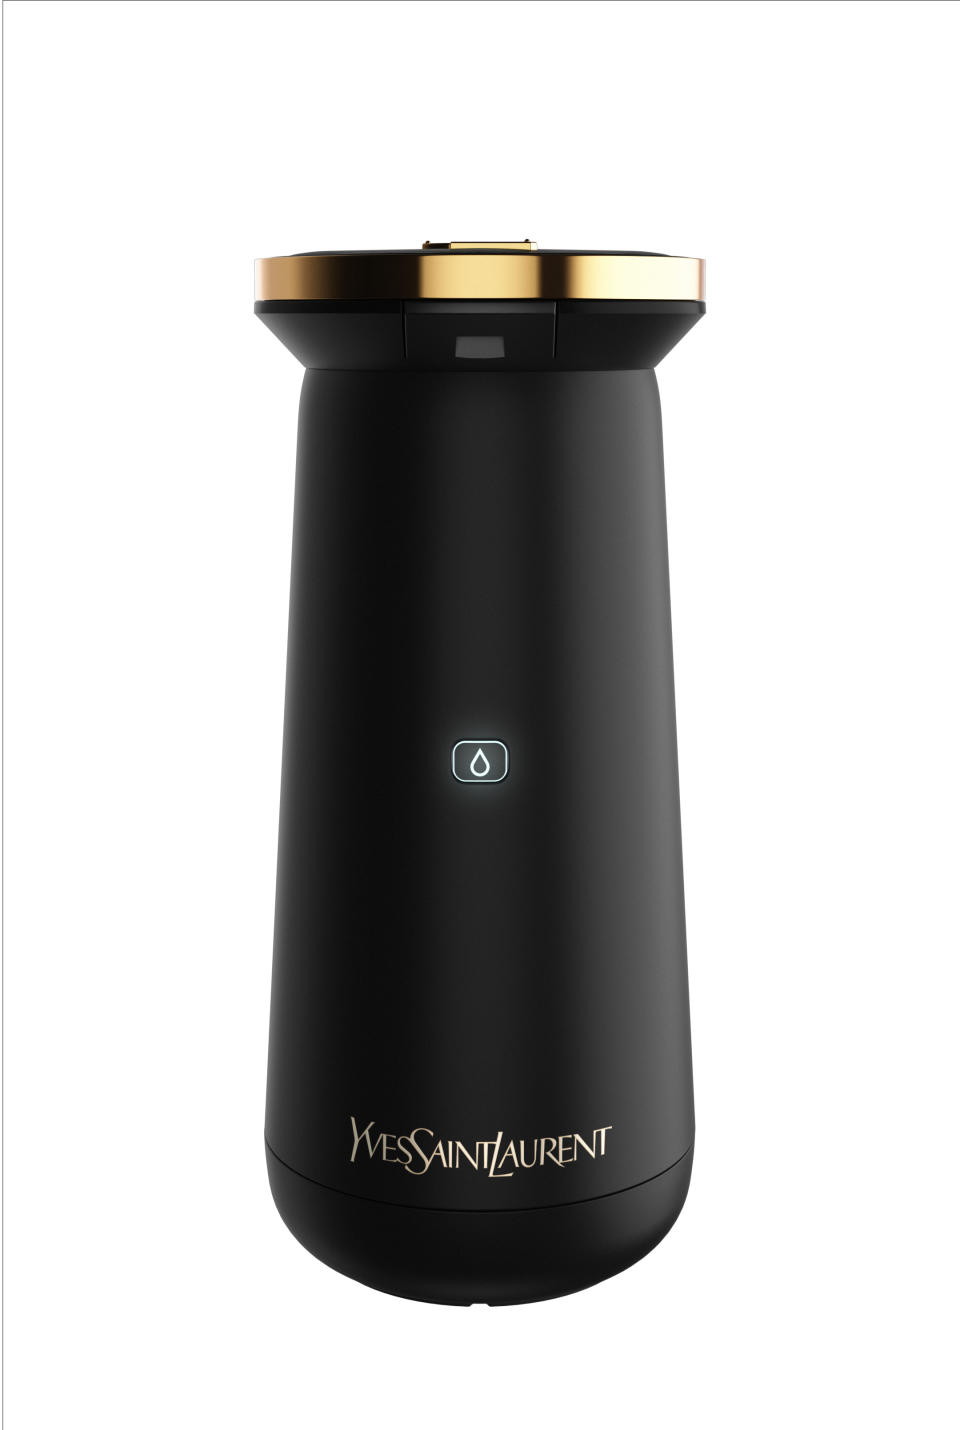 Yves Saint Laurent Rouge Sur Mesure Powered by Perso at CES 2021